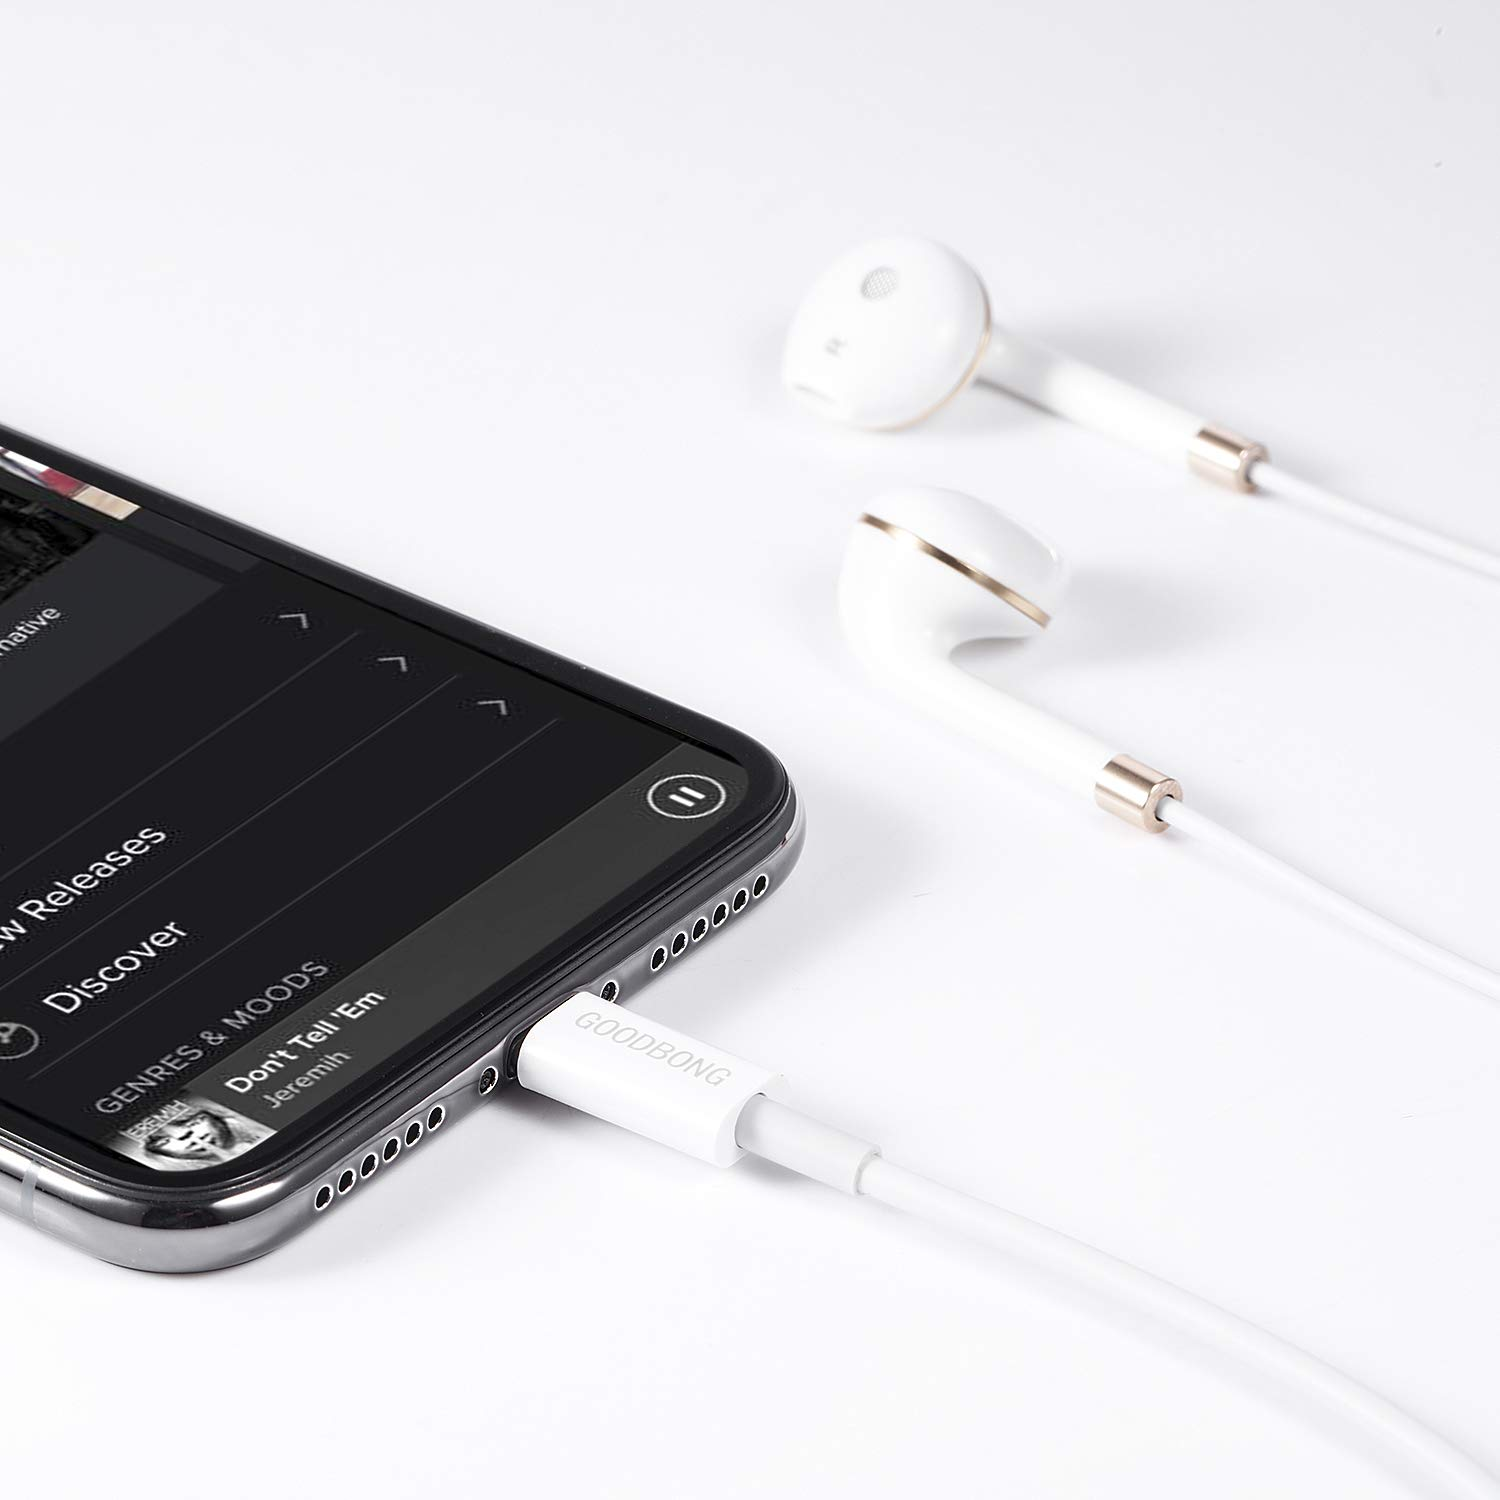 GOODBONG Headphones/Earbuds for iPhone/ipad/iPod, Stereo Sound in Earbuds and Built-in Mic and Volume Control White